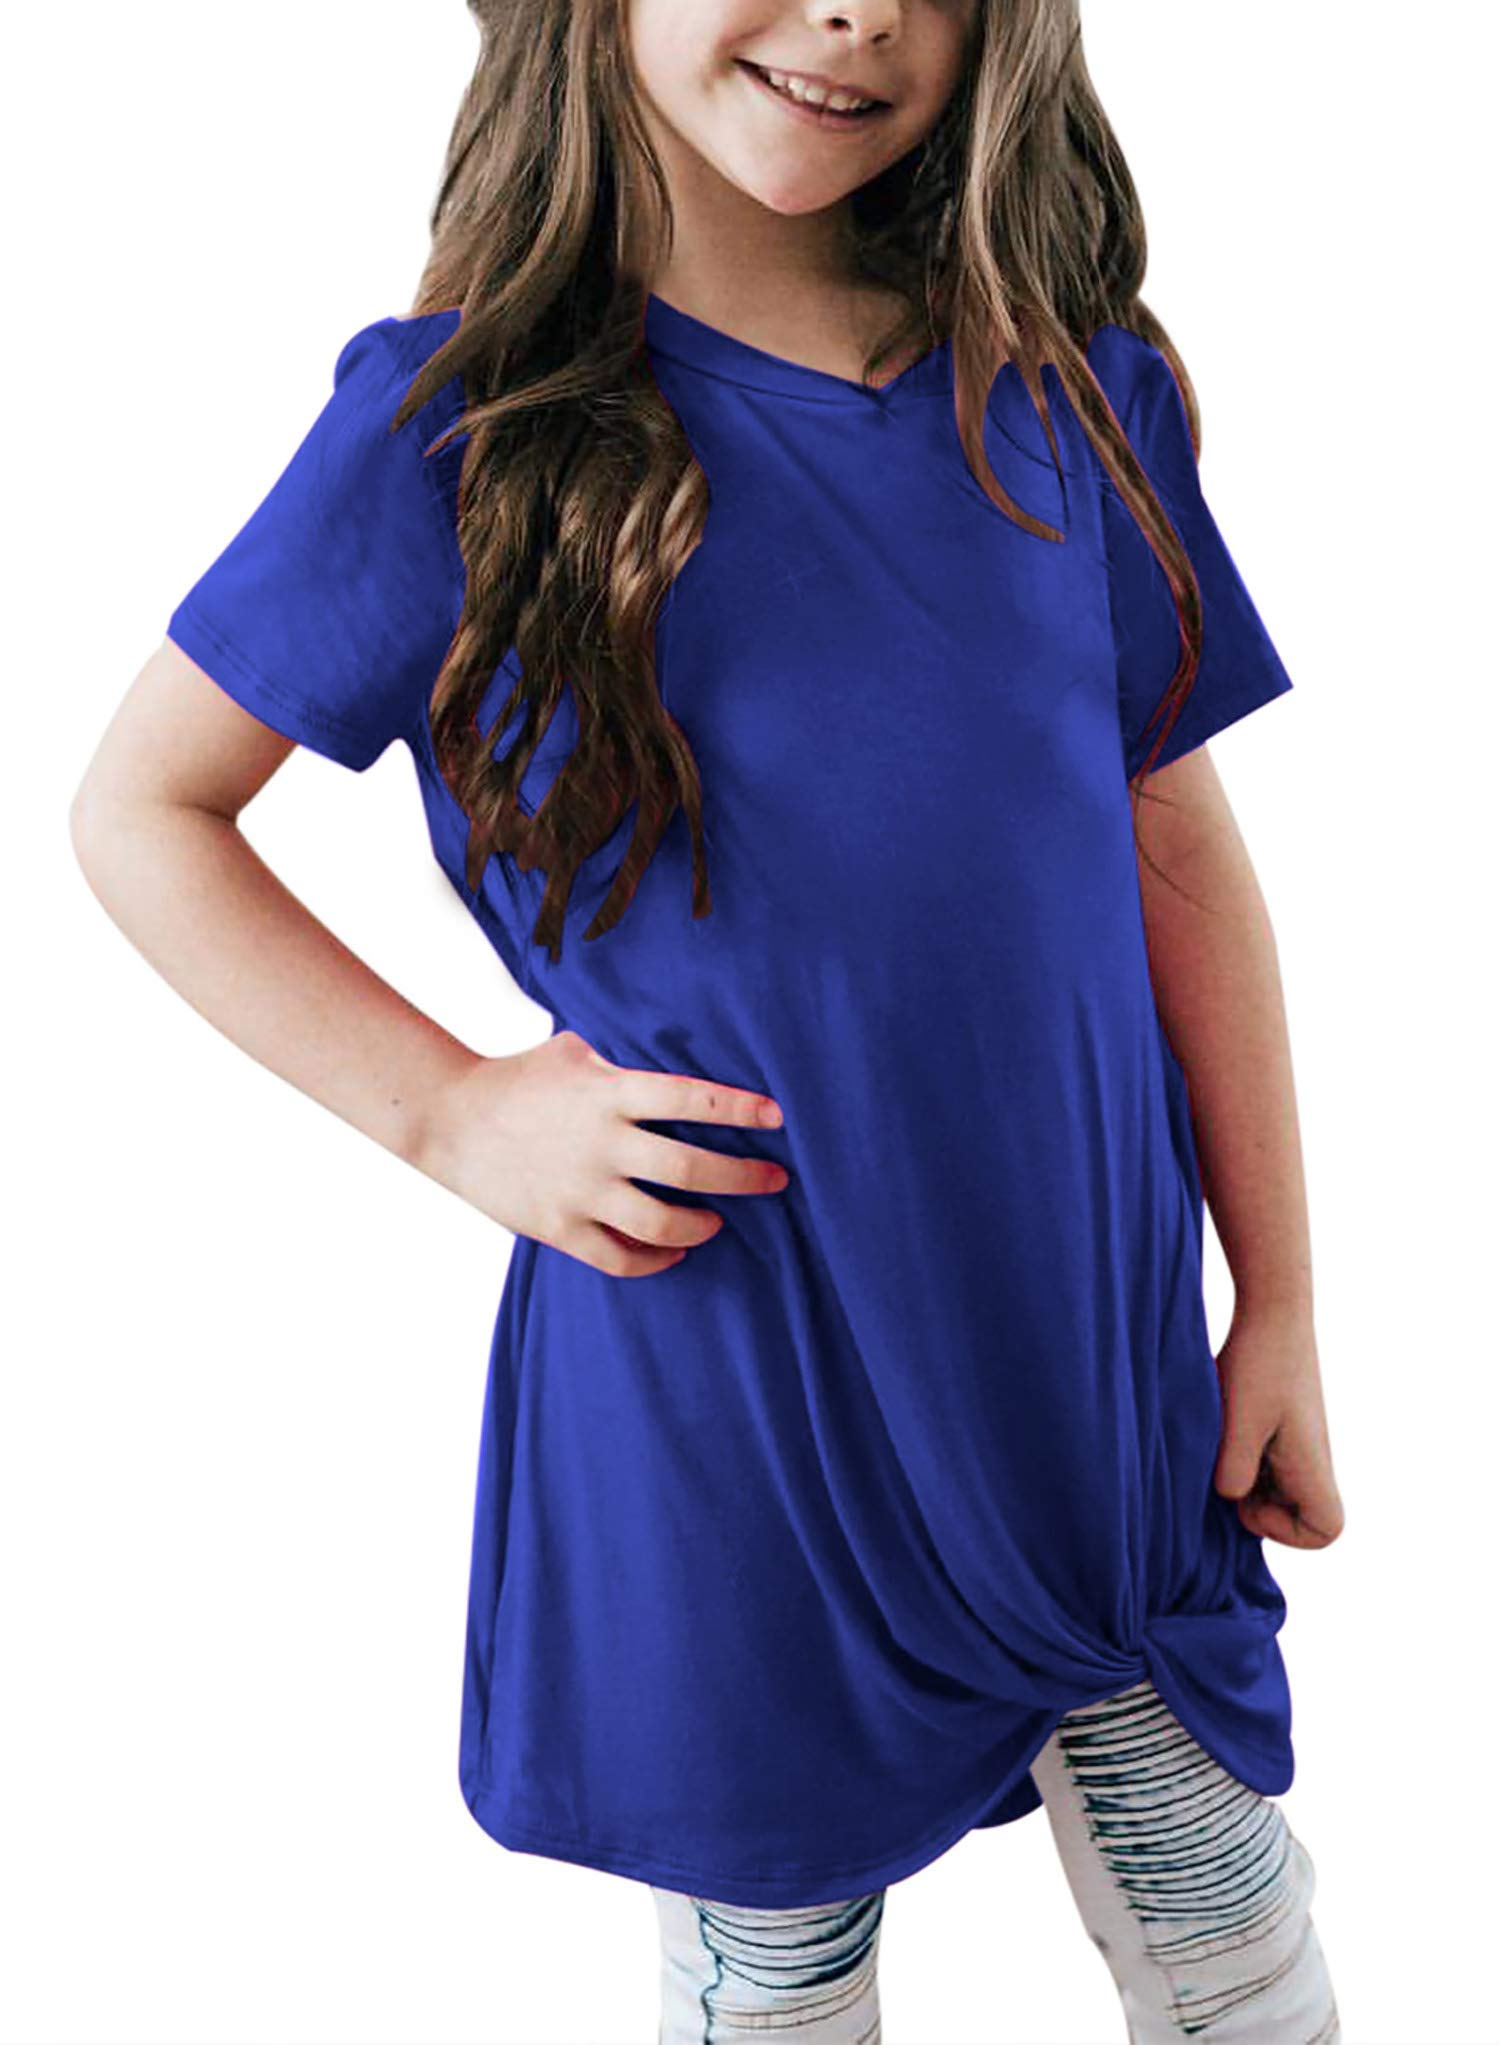 Bulawoo Girls Clothing Casual Short Sleeve Summer Tops Little Girls Knot Front Fashion Tee Shirts Size 4-13 8-9 Years Blue